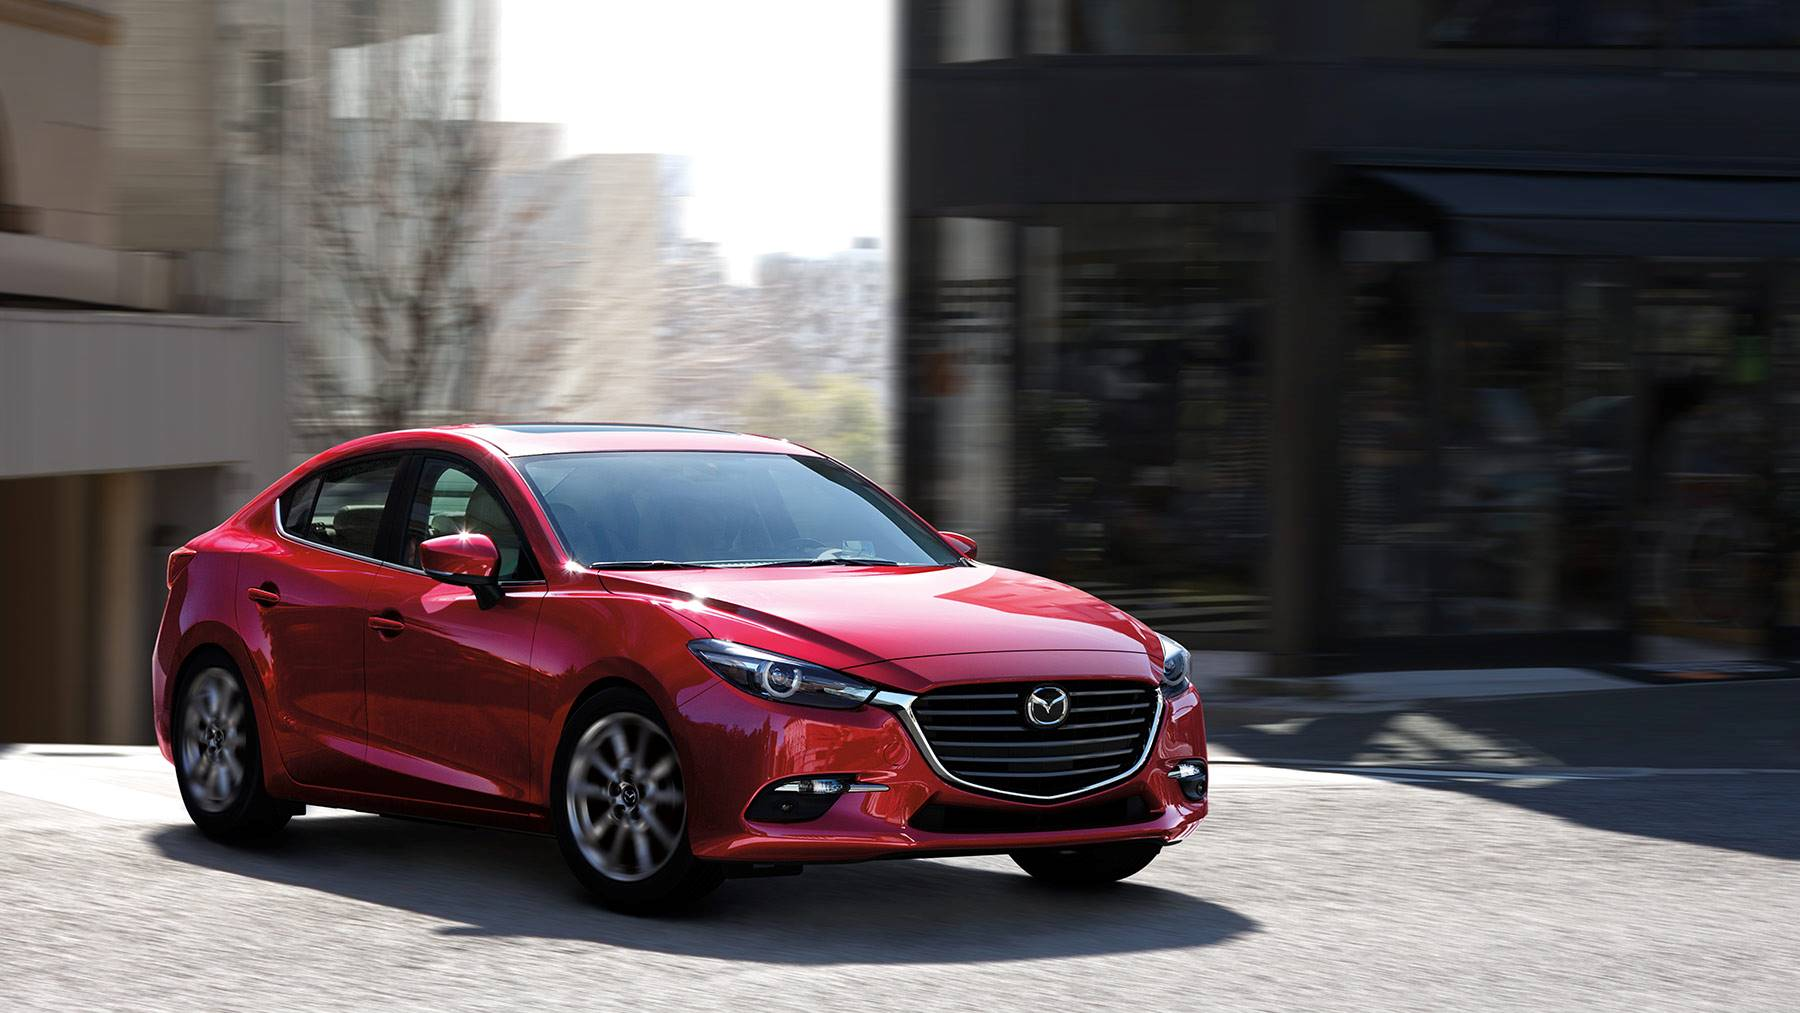 2018 Mazda3 for Sale near Bastrop, LA